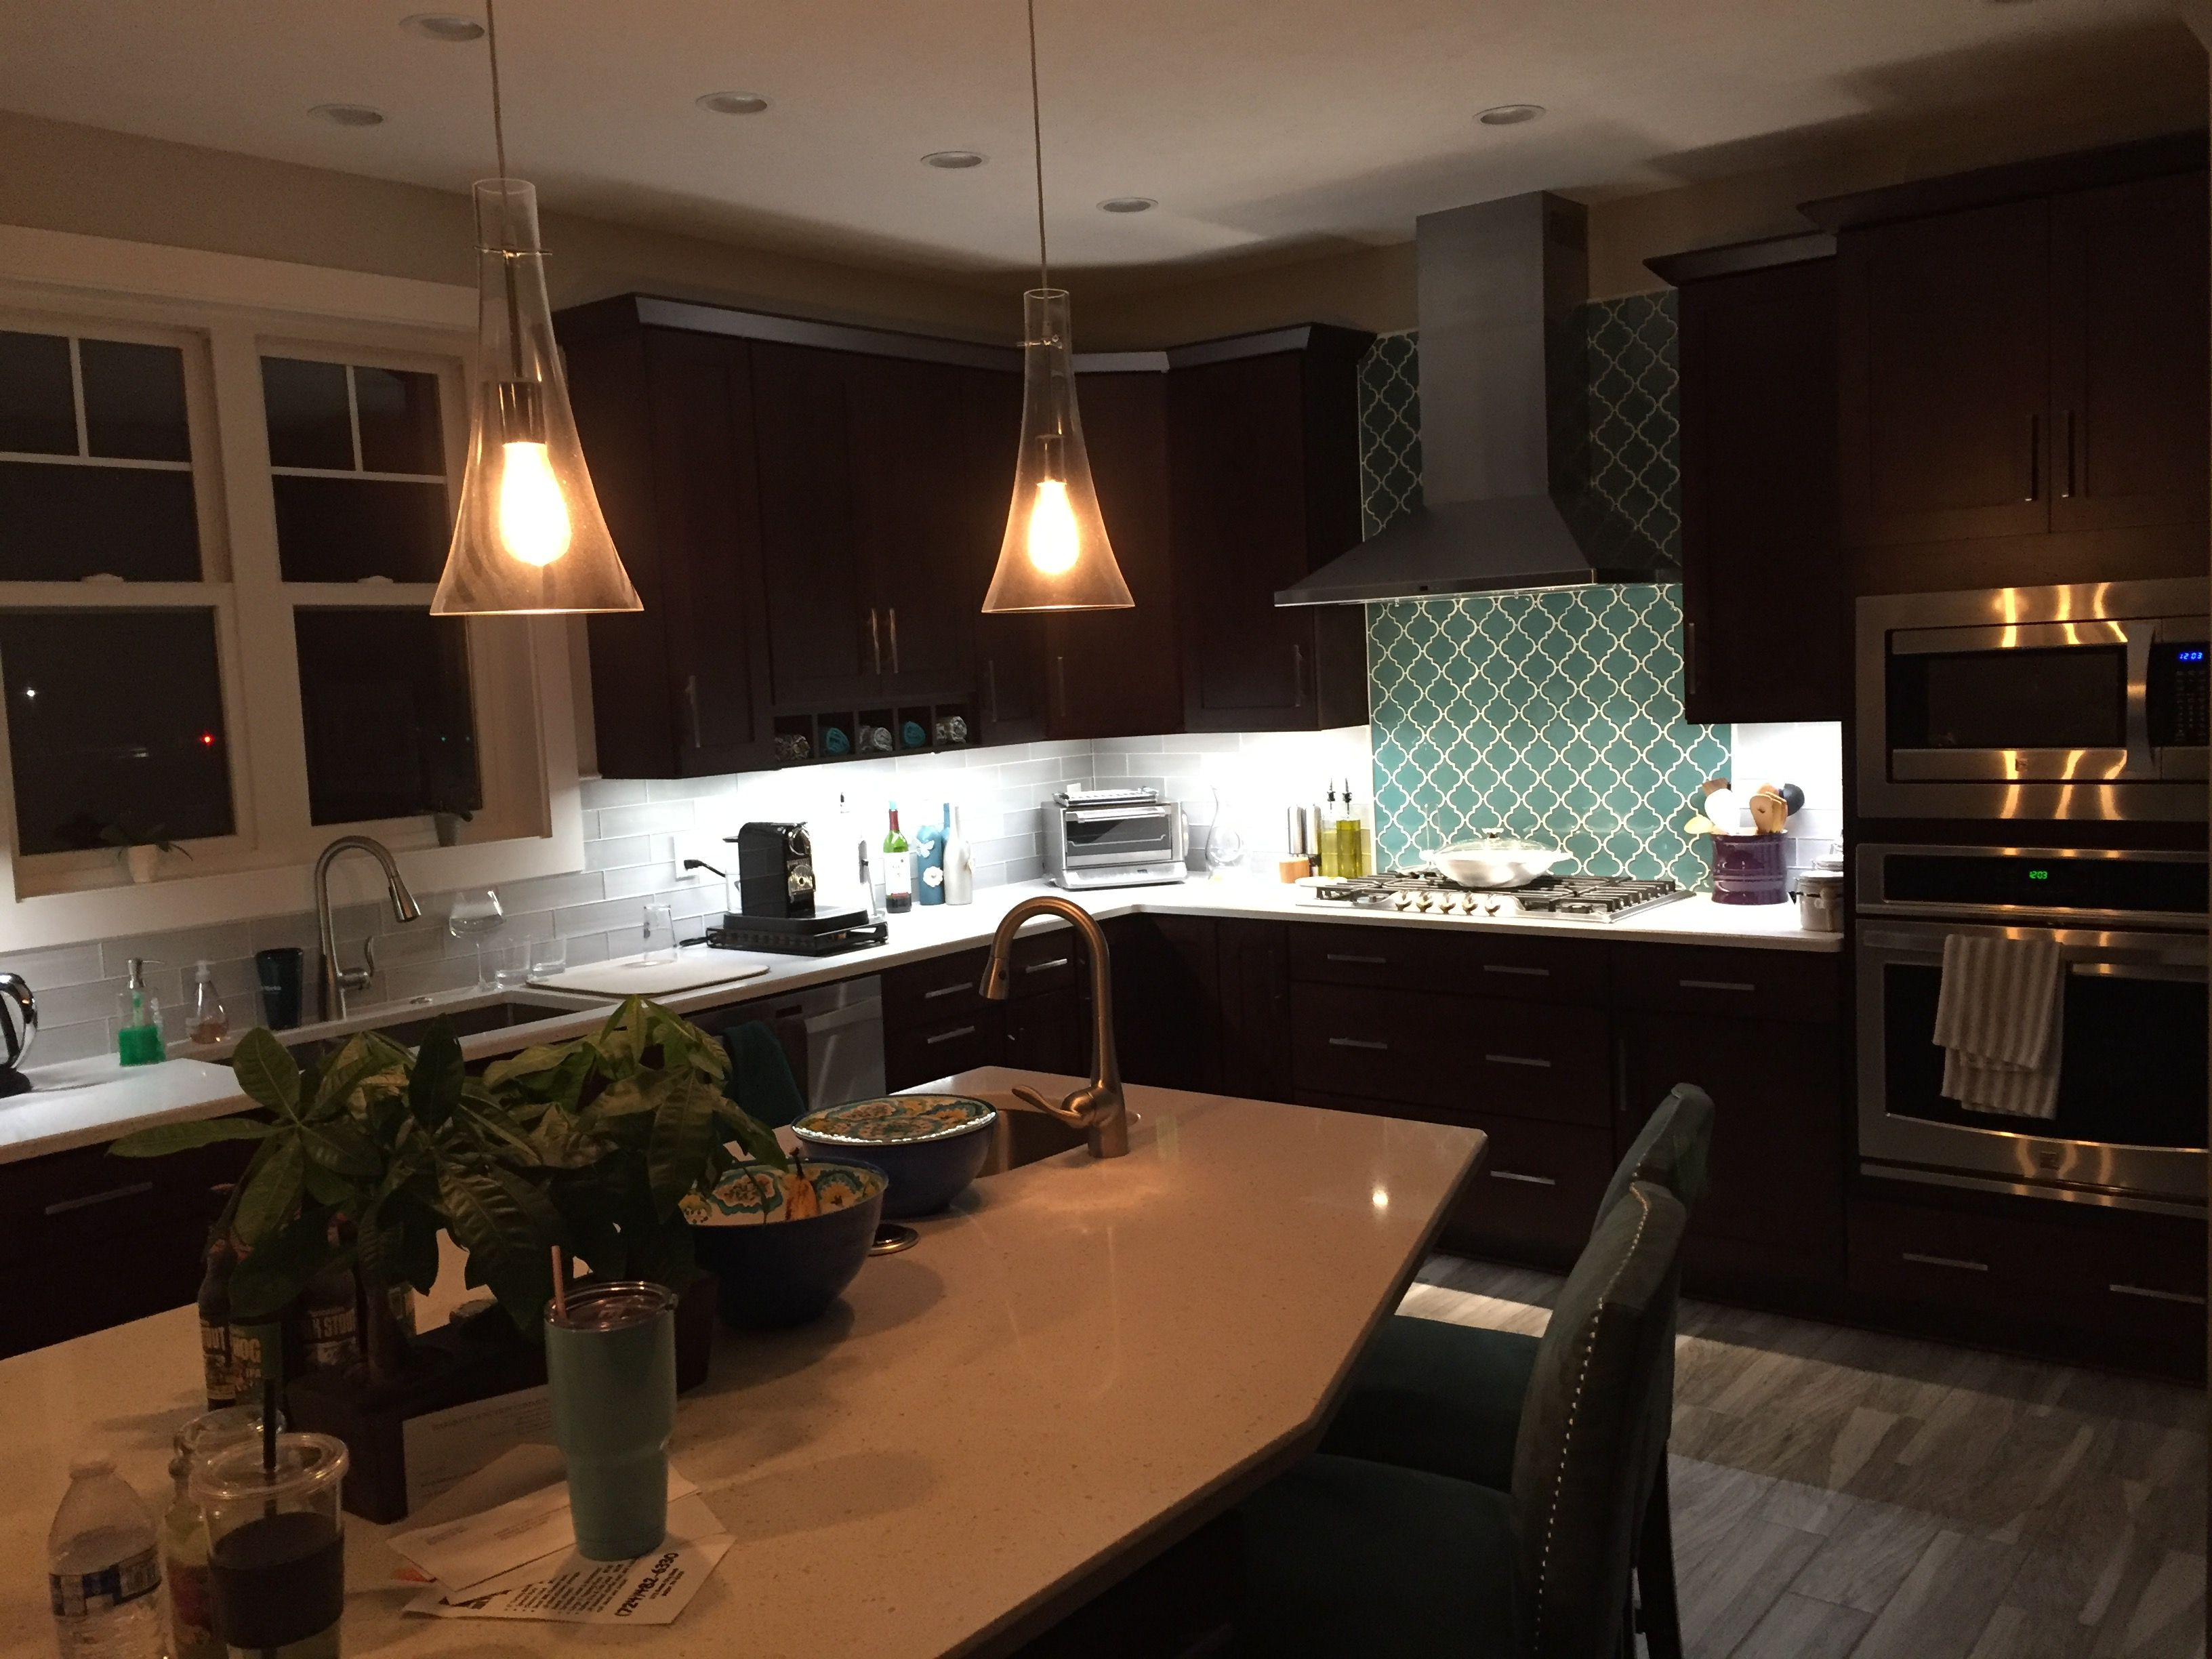 Our Kitchen With Under Cabinet Lighting By Inspiredled Great Company To Deal With Kitchen Led Lighting Under Cabinet Lighting Kitchen